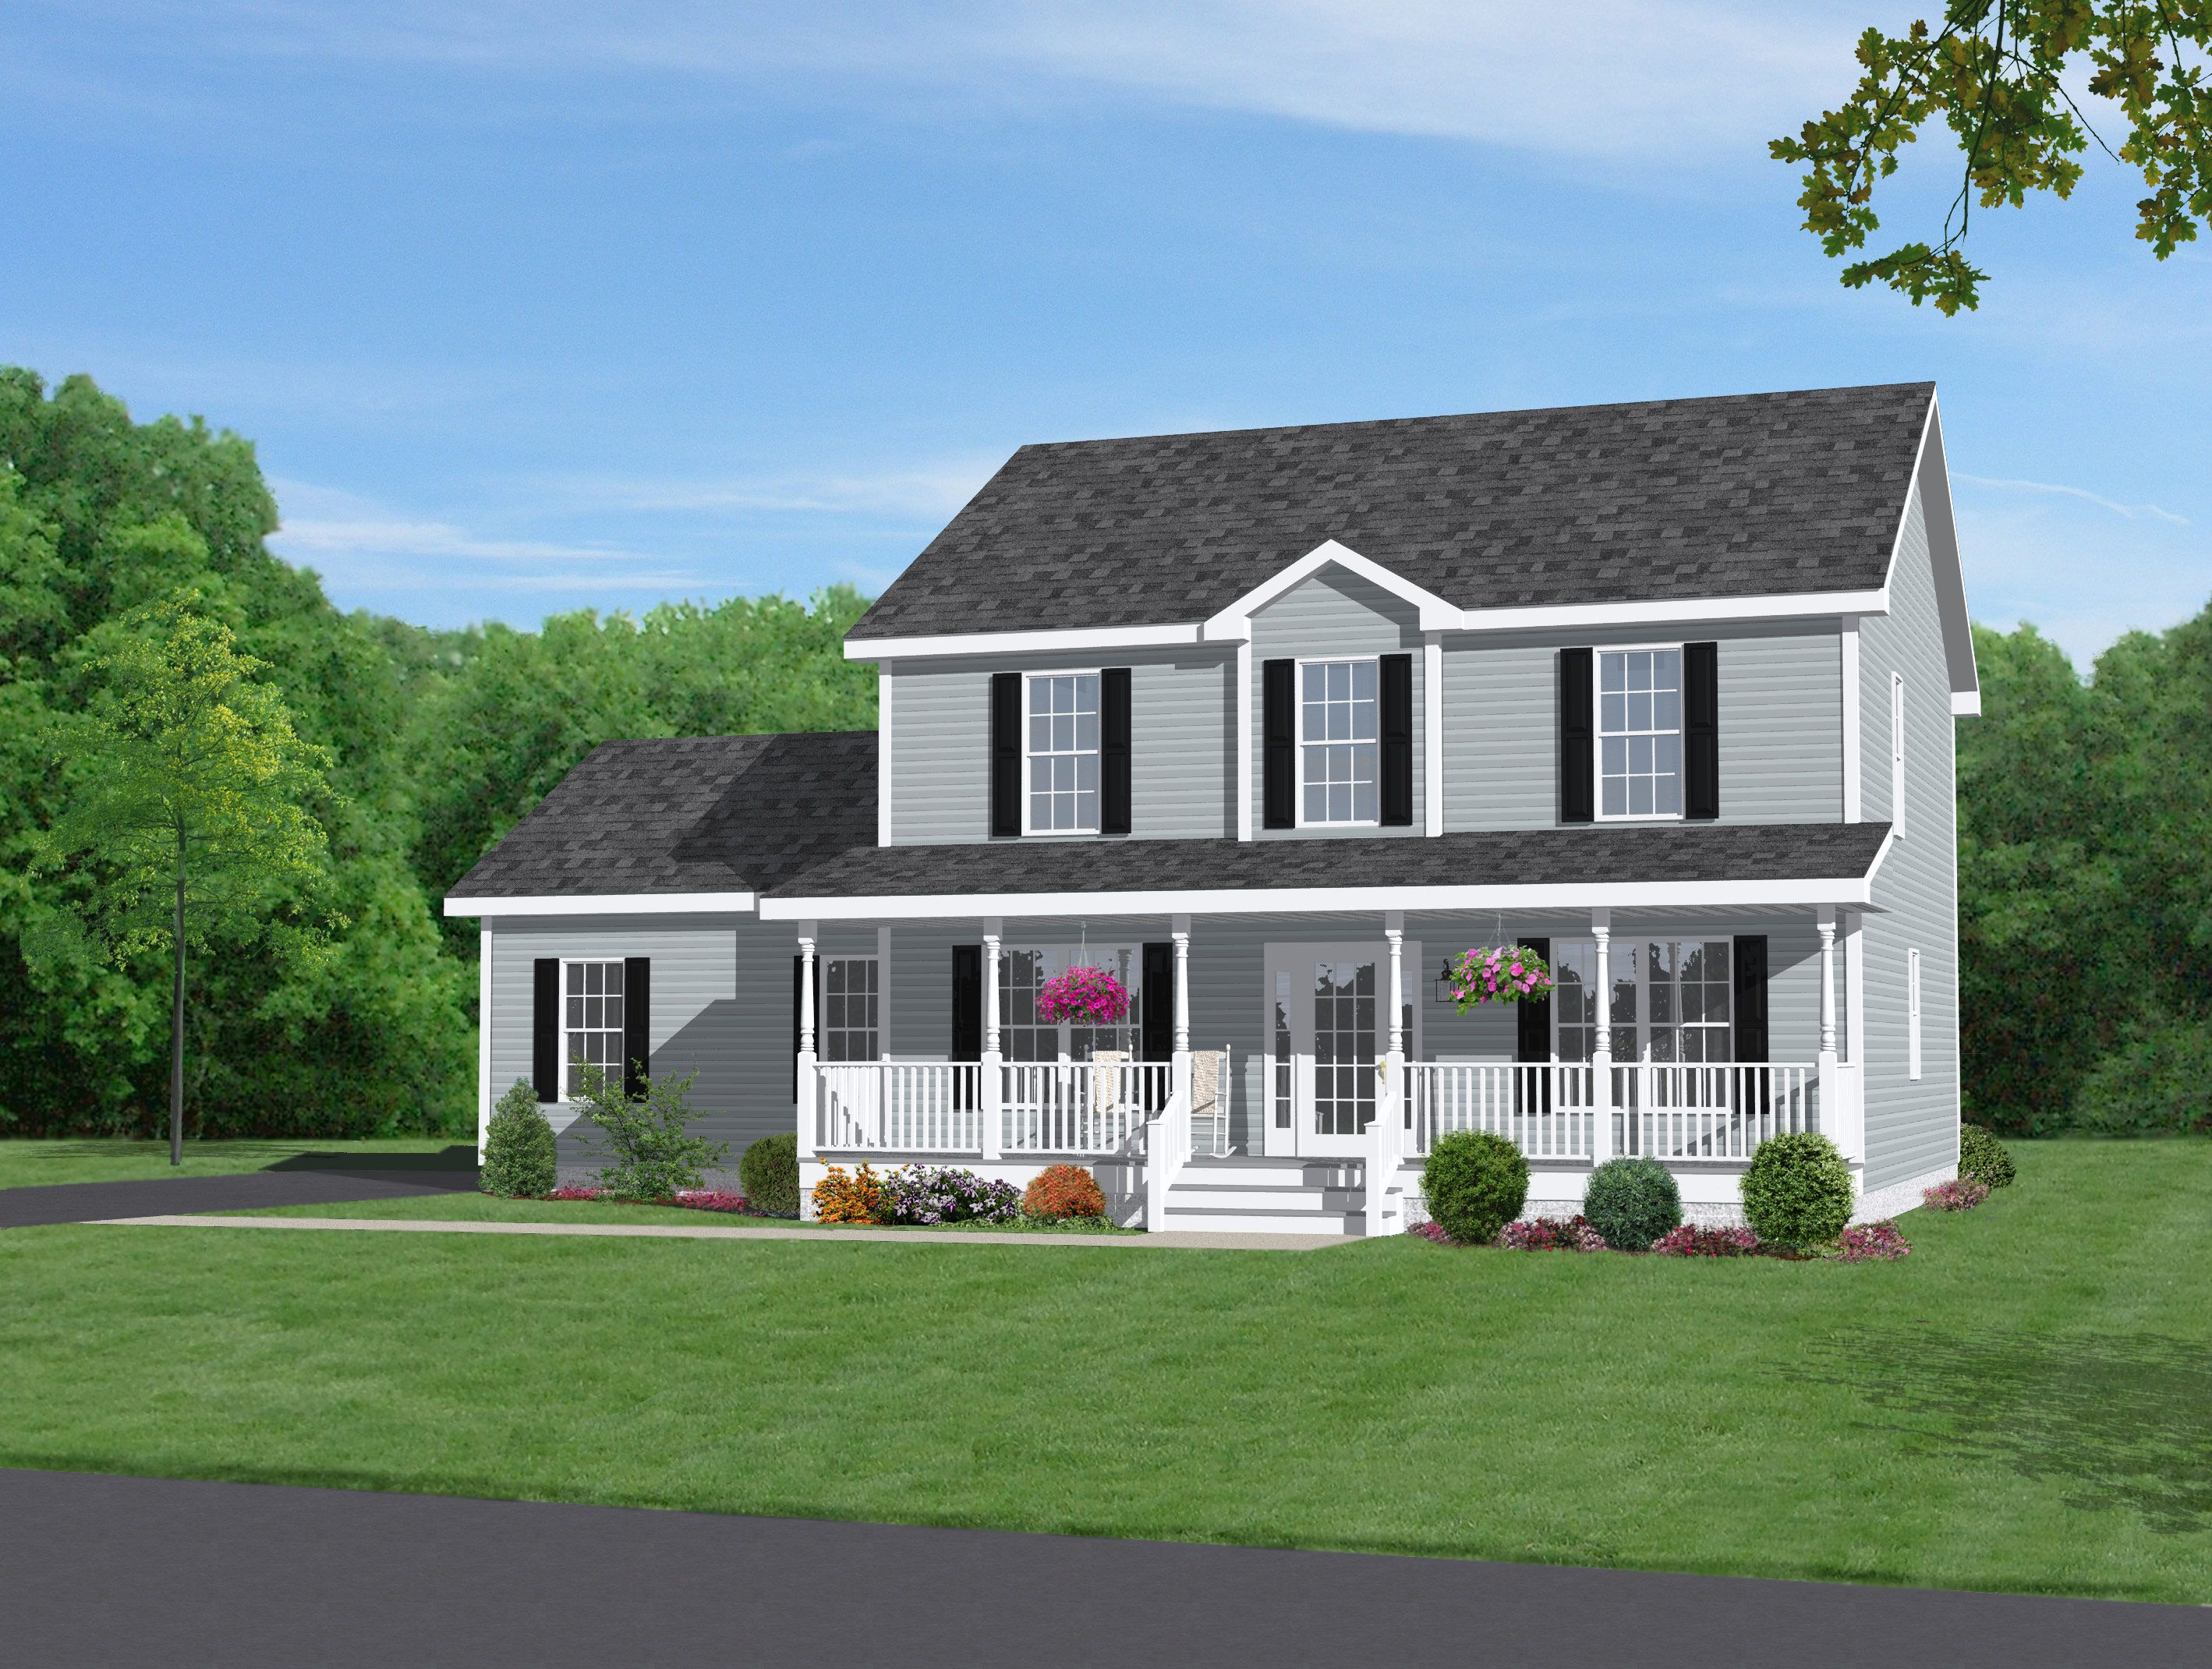 Two story home with beautiful front porch dream home 2 story house plans ireland